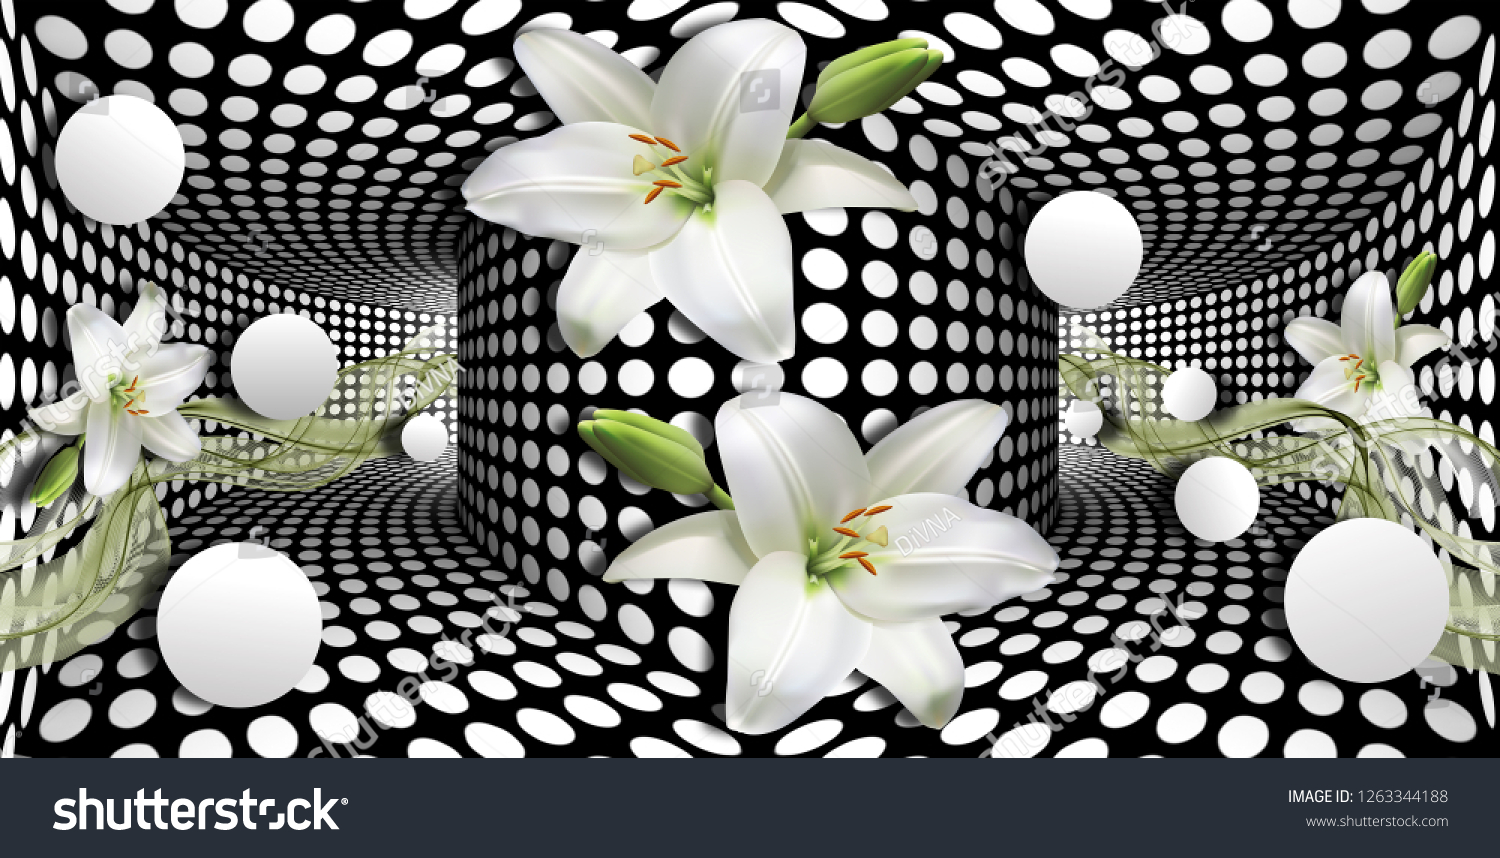 3d wallpaper, white calla lilies and sphere on optical illusions background